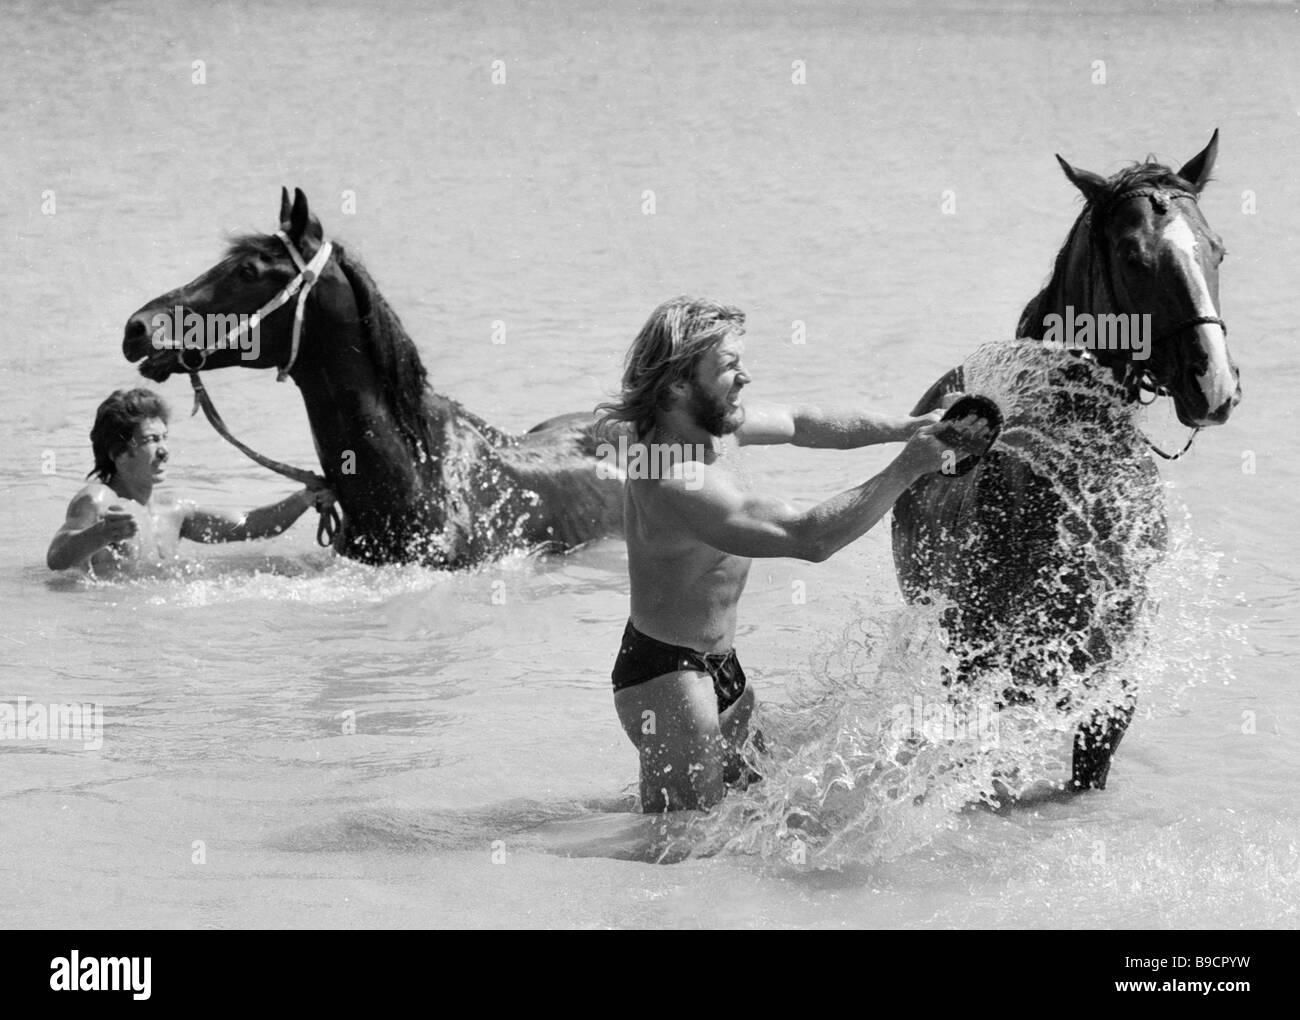 Actors with the Equestrian Theater of Stunt Performers bathing horses - Stock Image